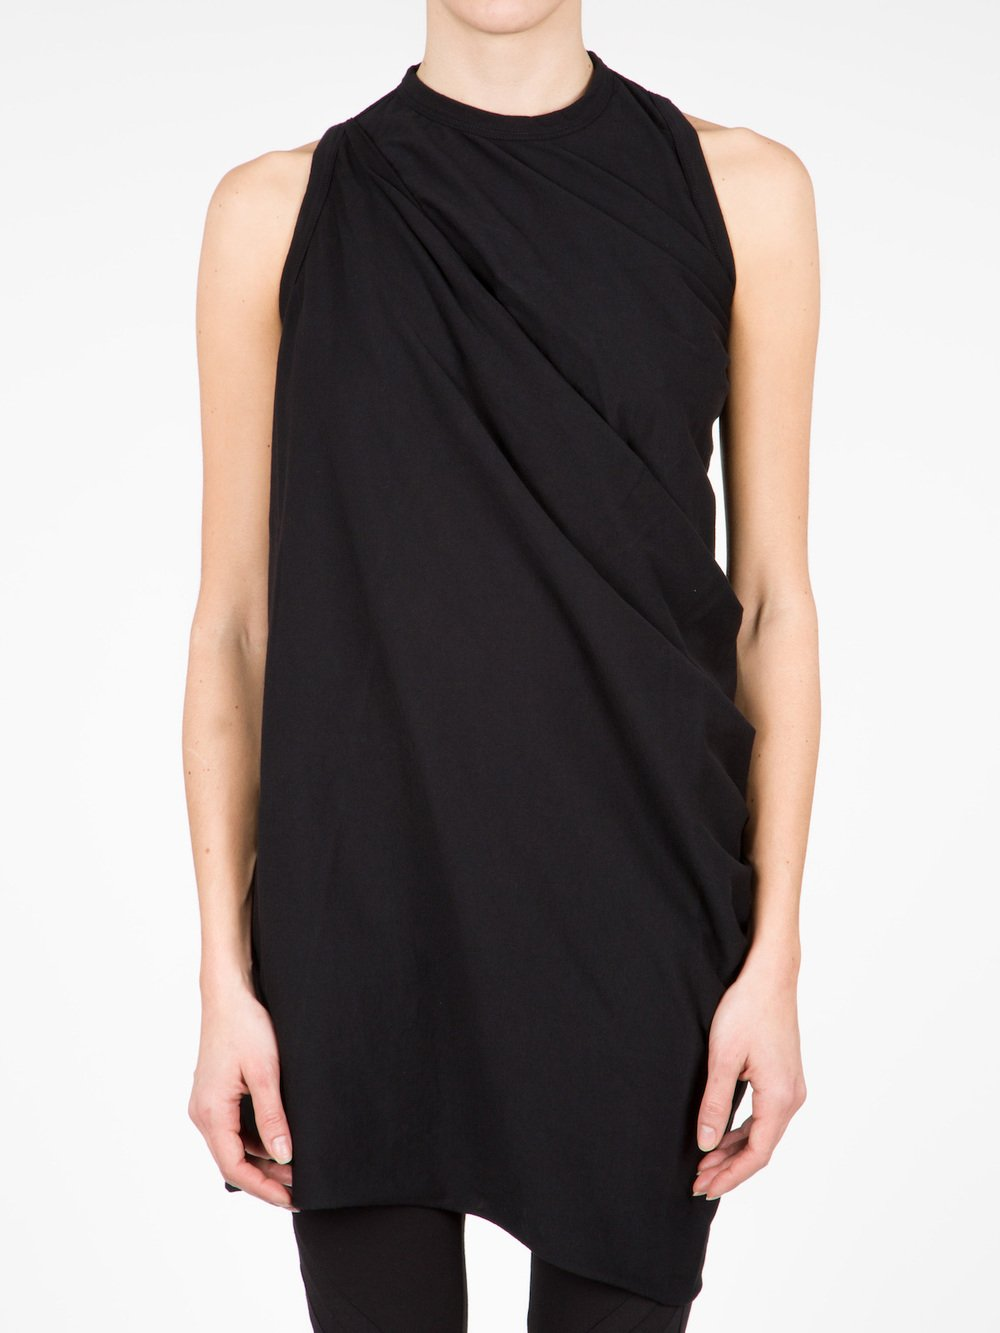 RICK OWENS LILIES - TUNIC DRESS